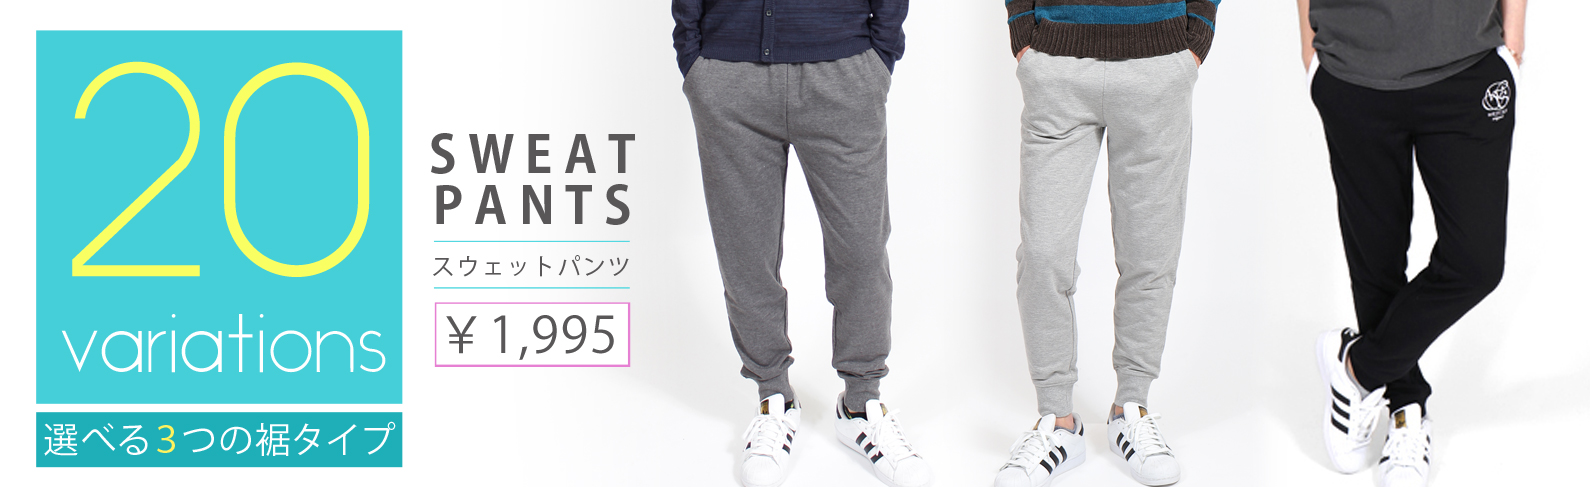 topbanner-sweatpants.jpg